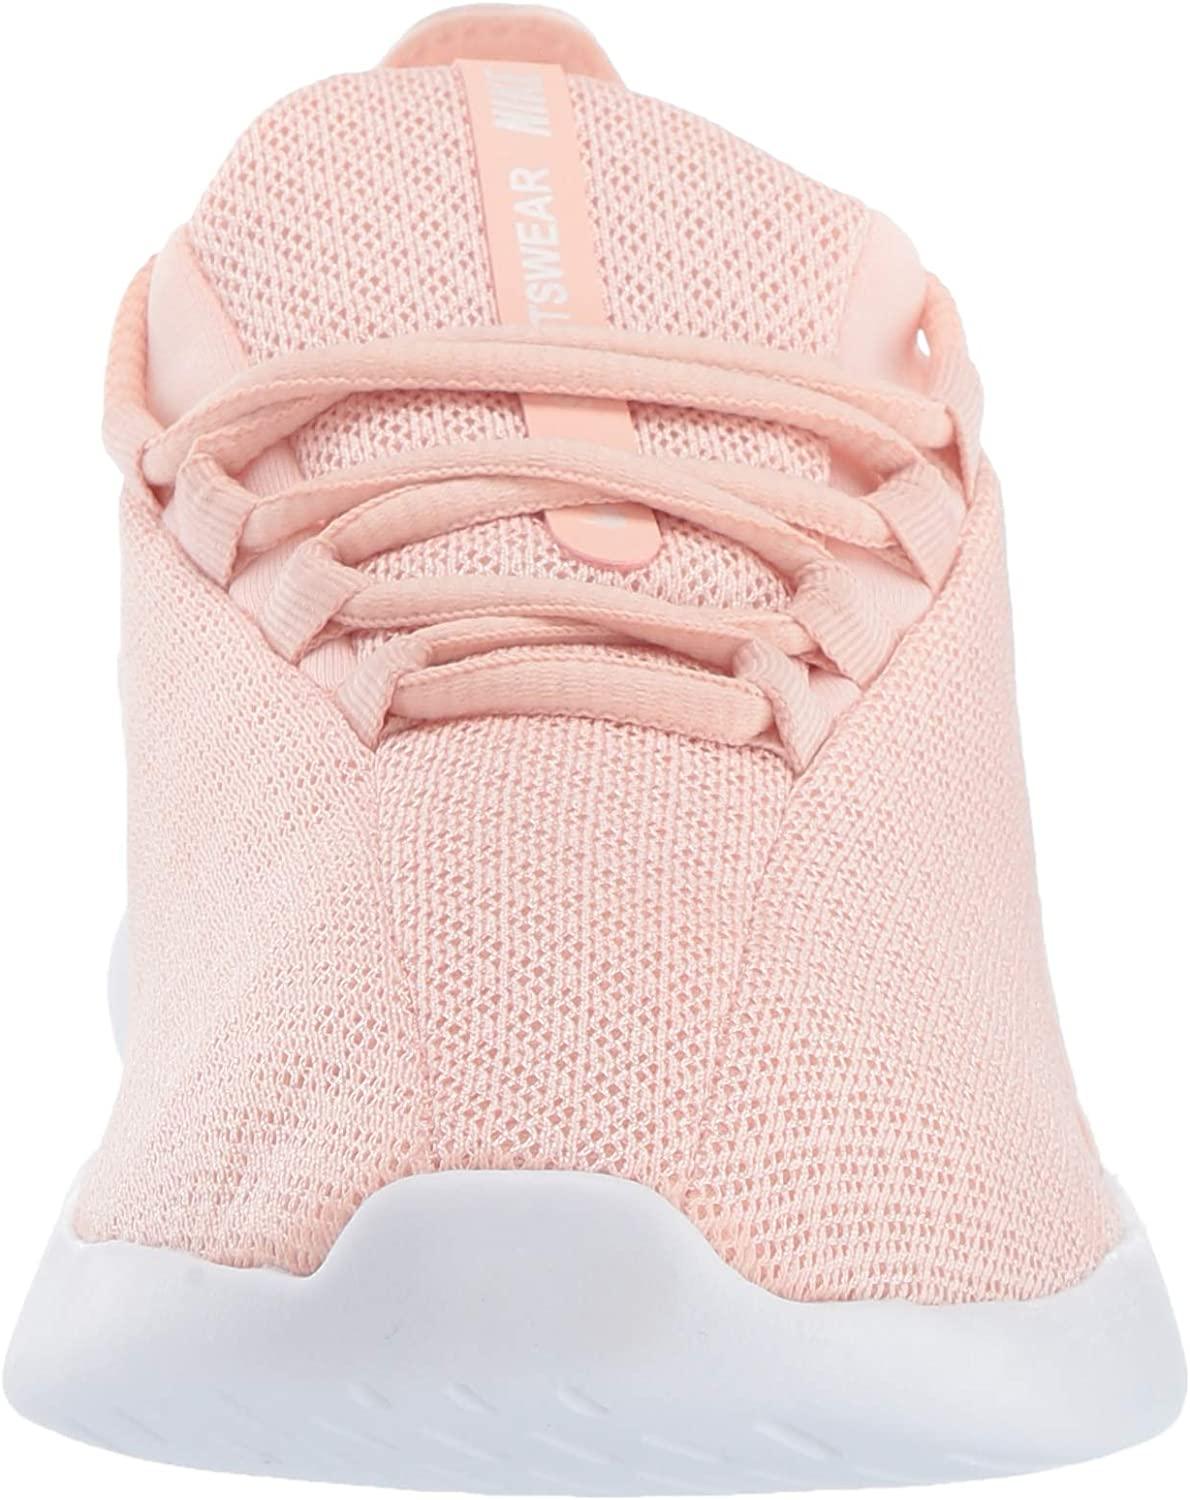 Nike WMNS Viale, Chaussures d\'Athlétisme Femme Multicolore Washed Coral White Pale Ivory 000